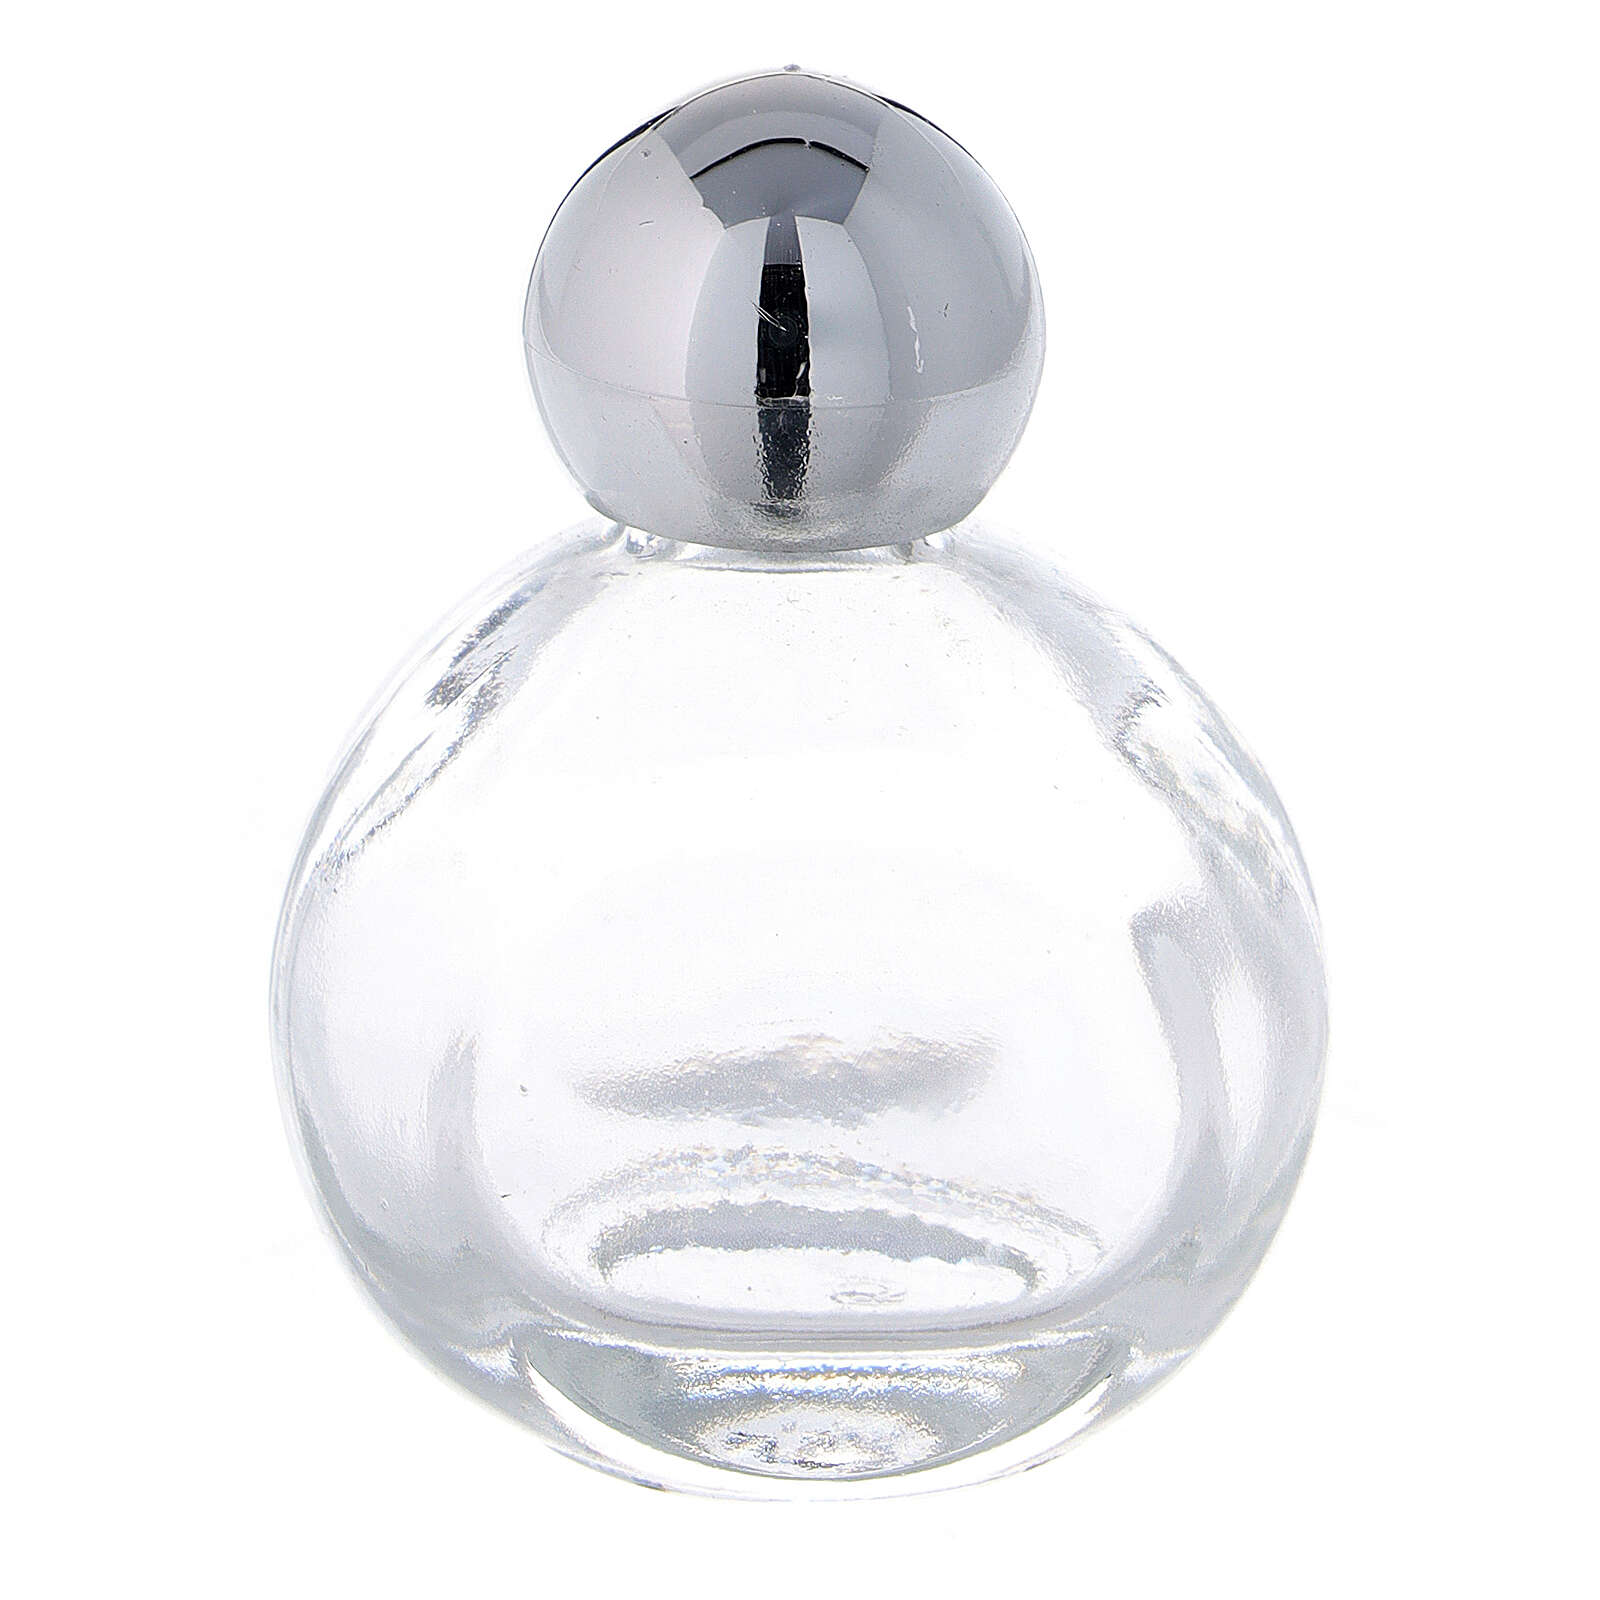 15 ml holy water glass bottle with silver plastic cap (50-PIECE PACK) 3